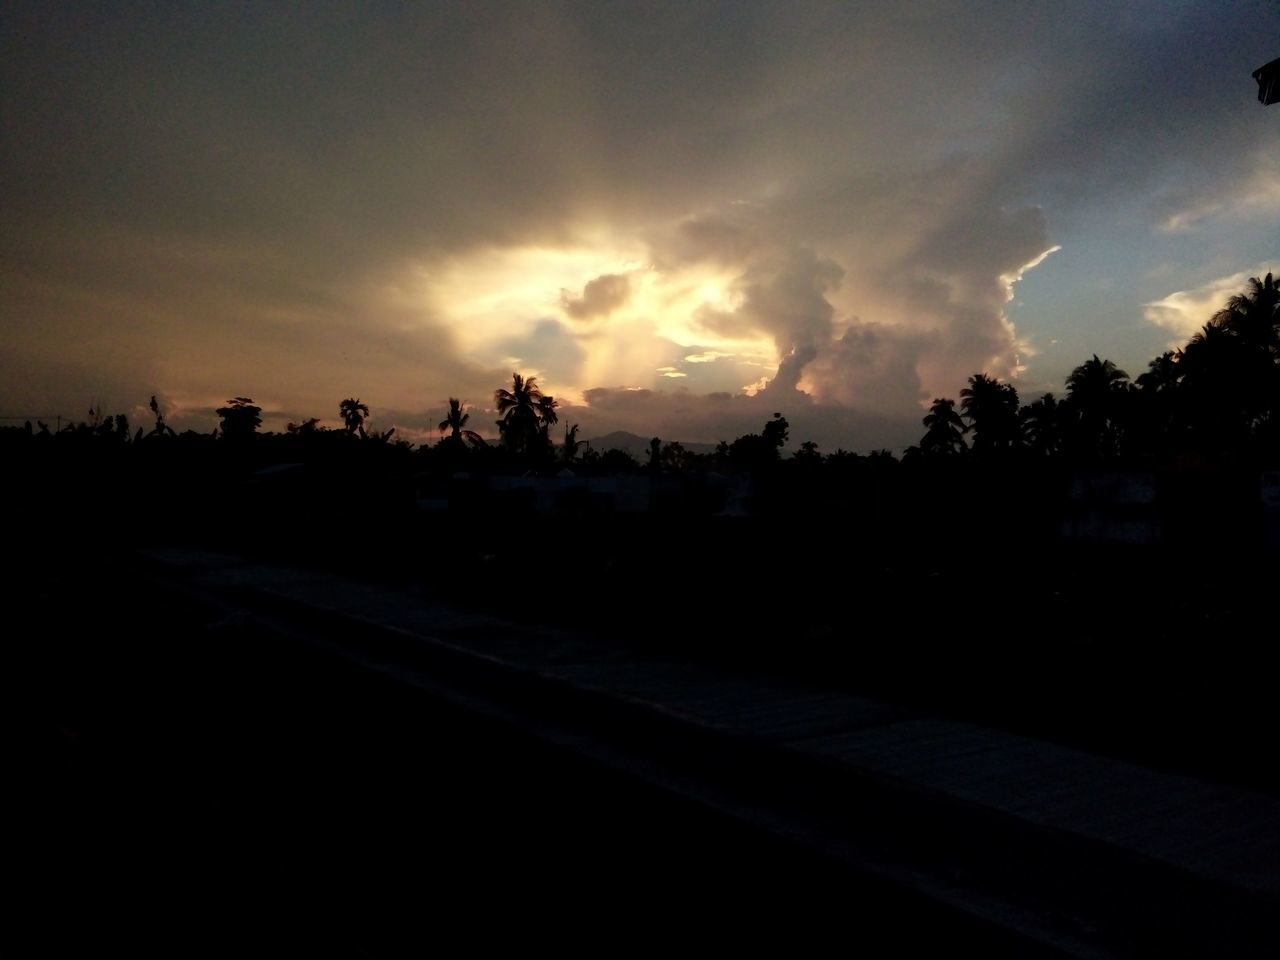 sunset, silhouette, sky, cloud - sky, tree, dramatic sky, scenics, nature, no people, transportation, tranquility, tranquil scene, landscape, outdoors, beauty in nature, storm cloud, day